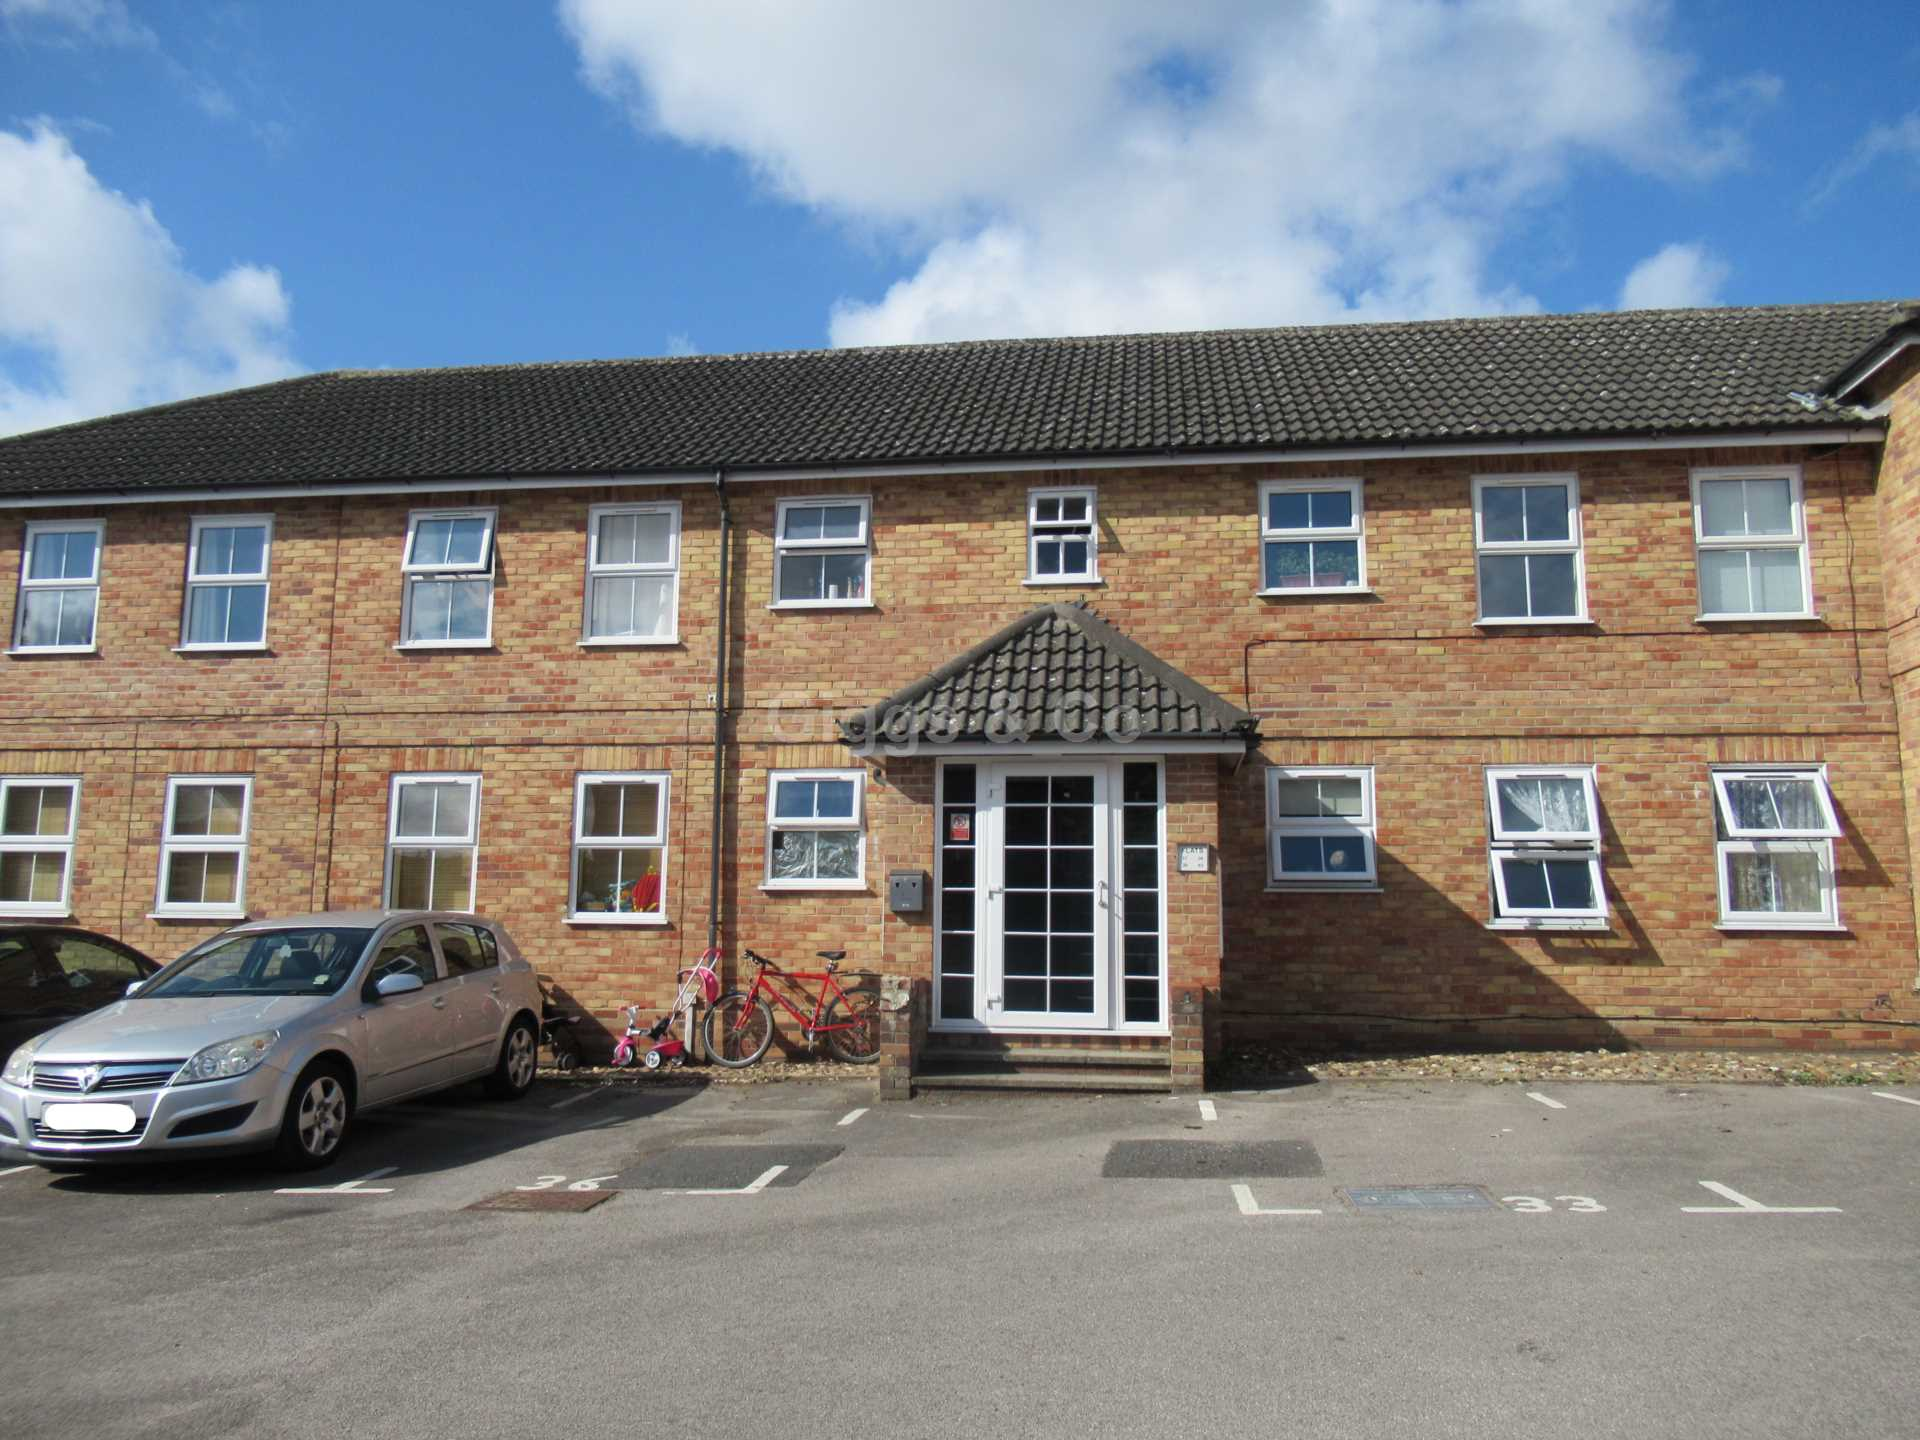 2 bed apartment to rent in Linclare Place, Eaton Socon, PE19